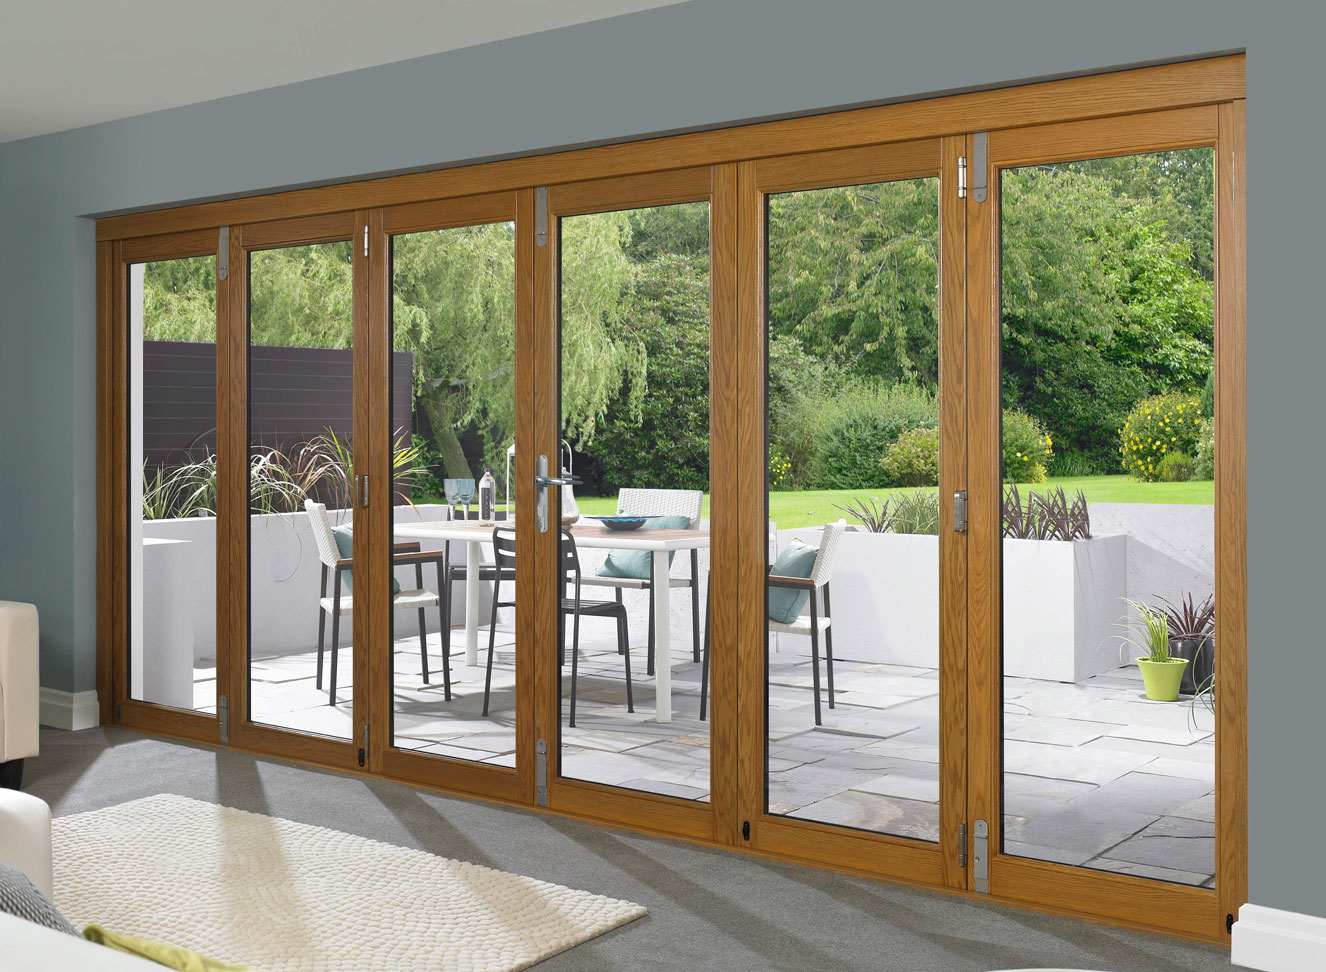 4 Ft Sliding Glass Door Of Sliding Patio Doors Patio Doors Vs French Doors 100